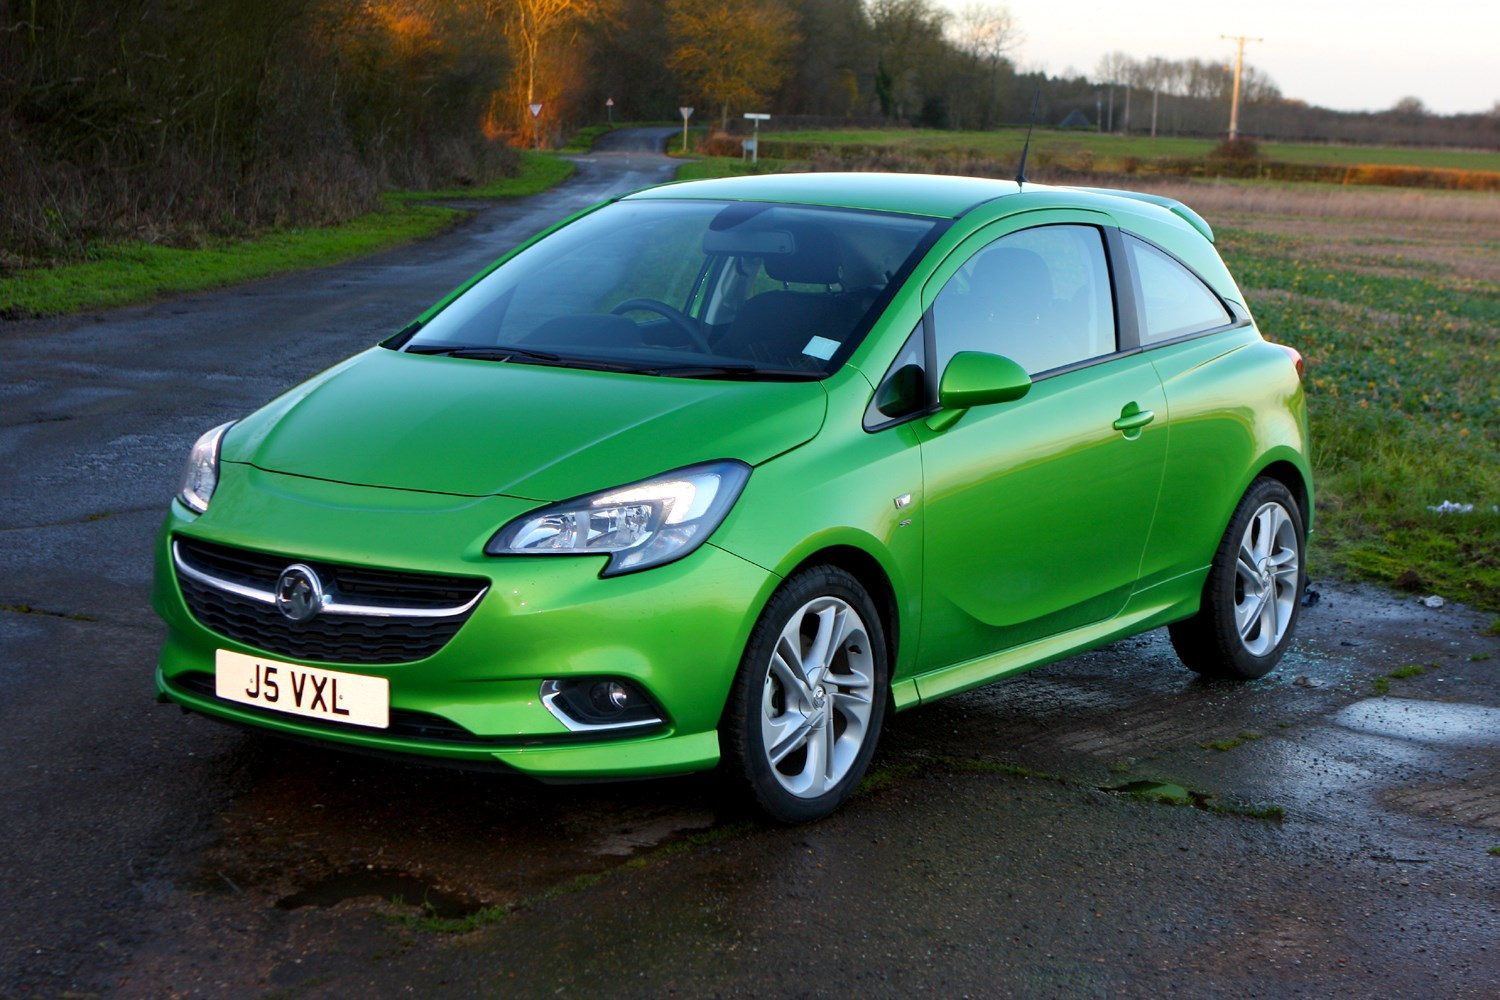 vauxhall corsa hatchback 2014 photos parkers. Black Bedroom Furniture Sets. Home Design Ideas